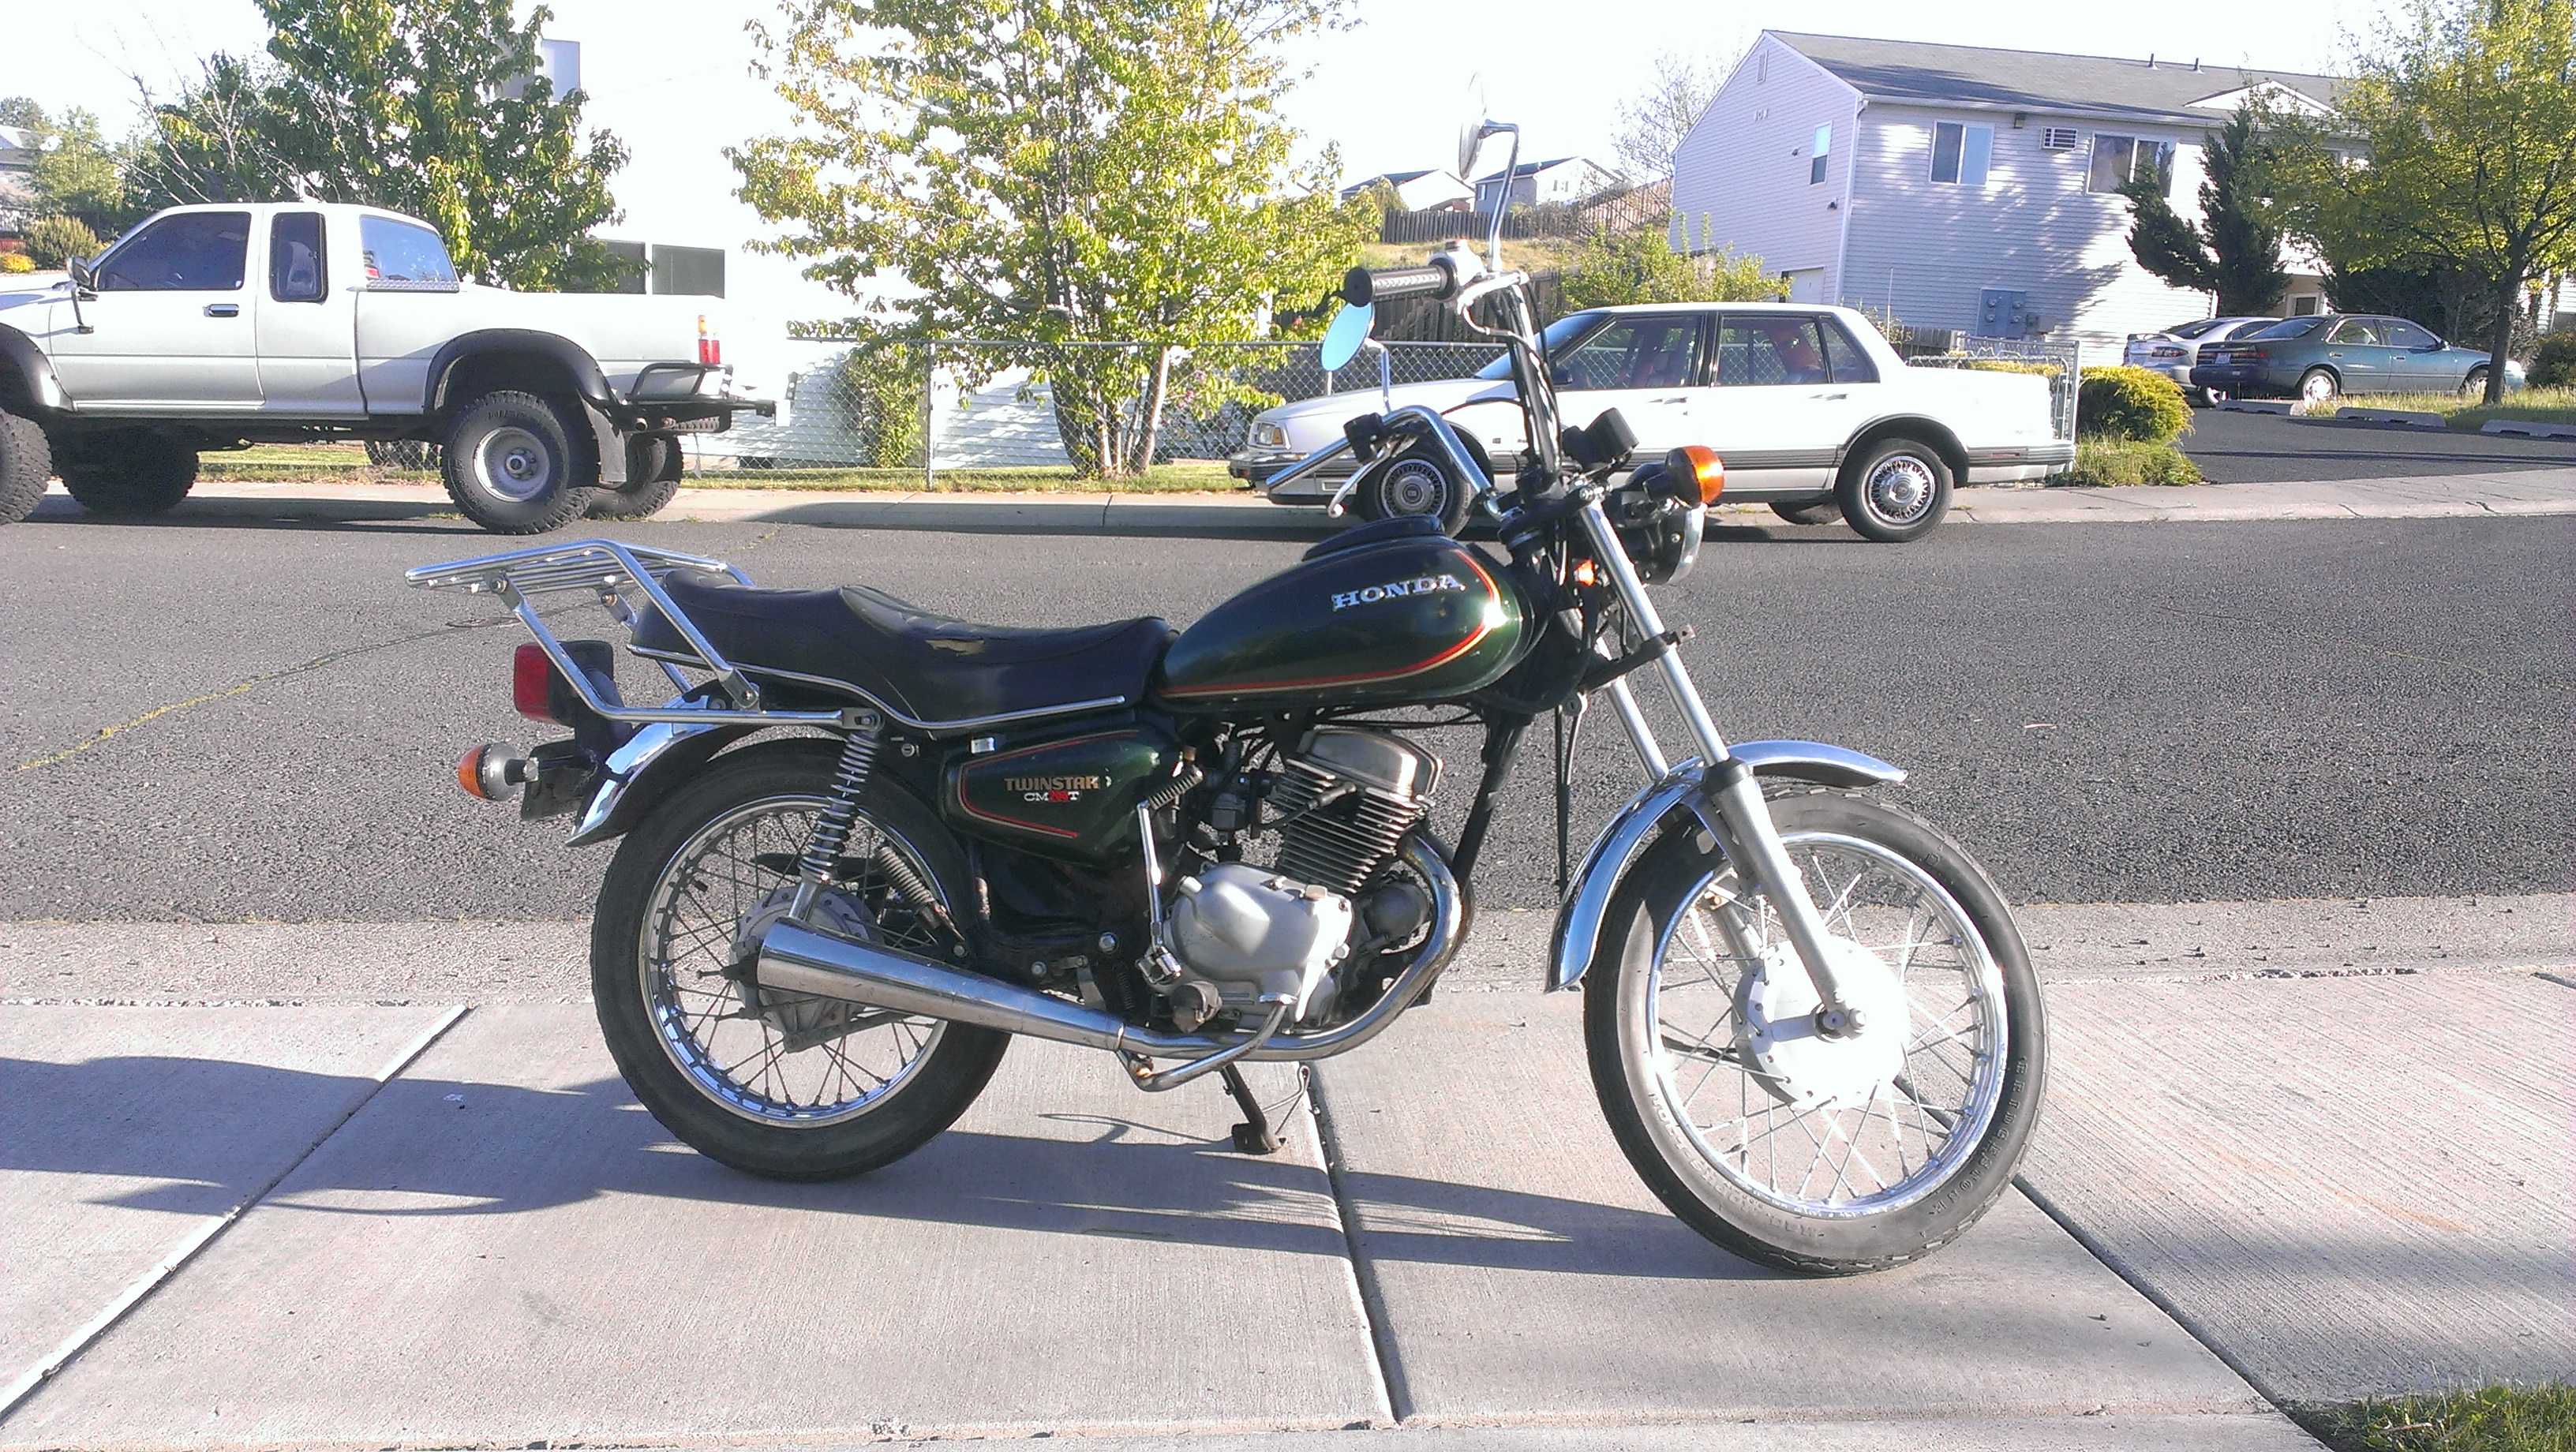 Honda Xl 500 S Wiring Diagram Electrical Diagrams Of A 1980 Goldwing Cm200 Trusted Cc Motorcycle Cool 1981